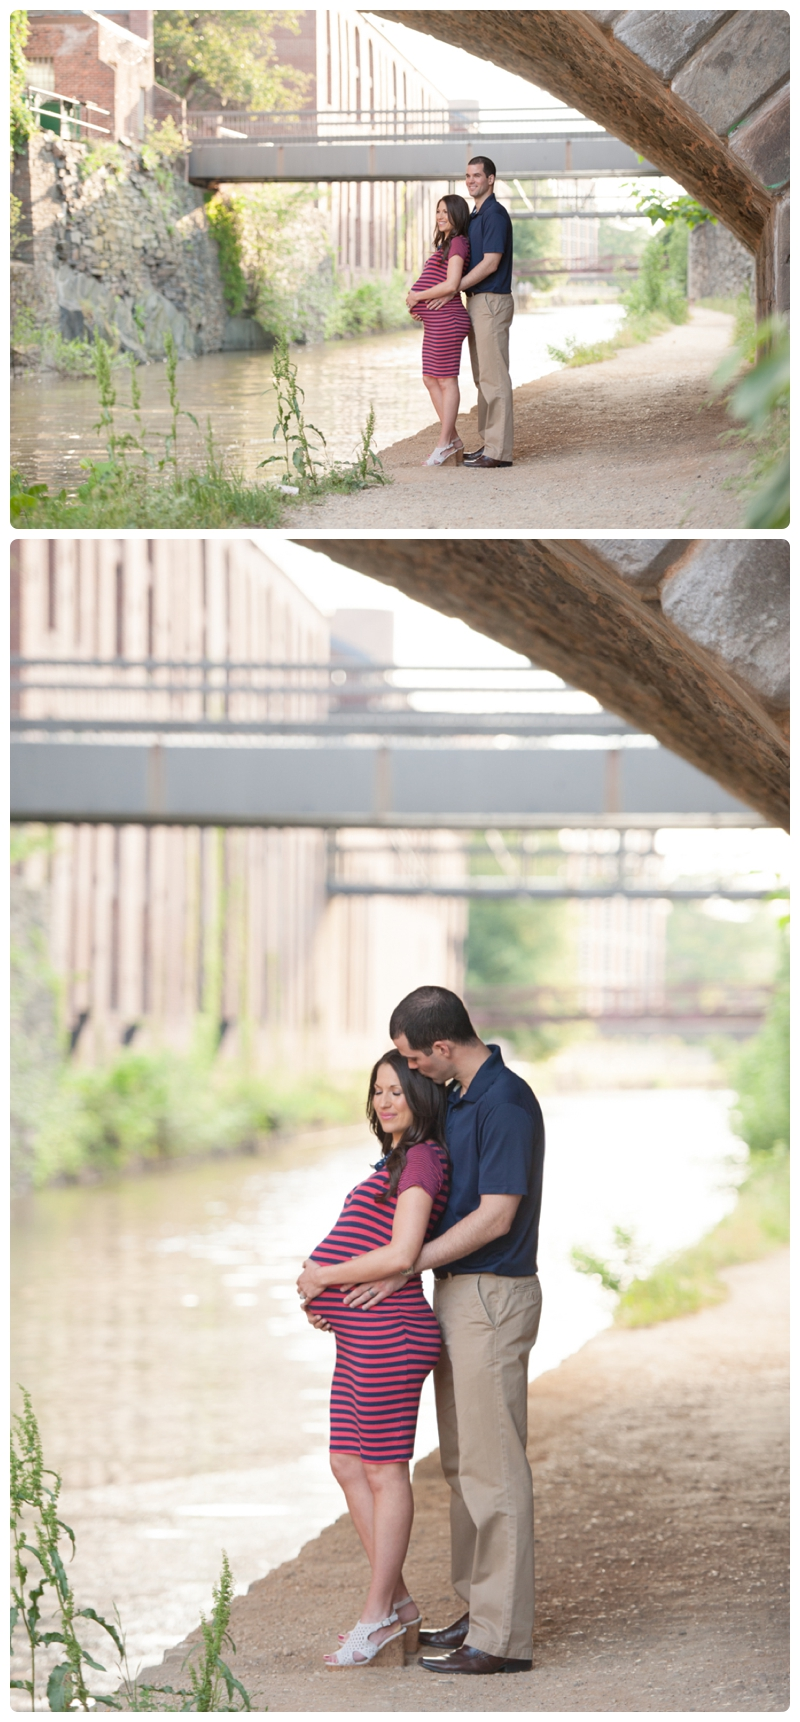 Maternity Photography in Washington, DC by www.rachaelfosterphoto.com_0073.jpg